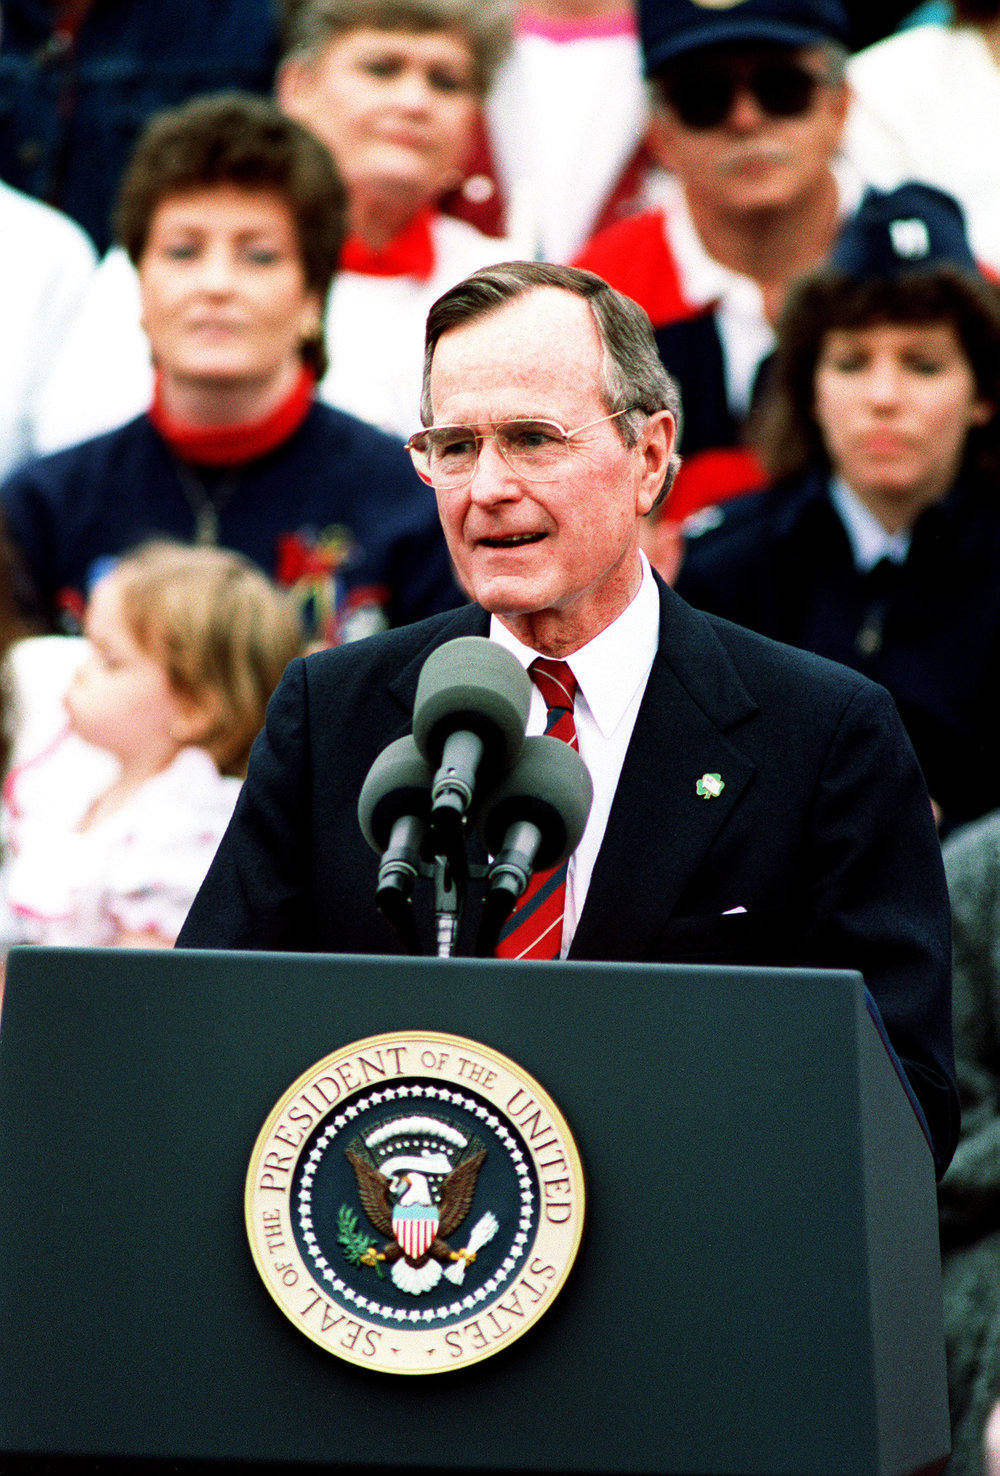 President George H.W. Bush speaks during a welcoming ceremony for U.S. military personnel just returned from deployment in Saudi Arabia during Operation Desert Storm at Sumter, S.C., March 24, 1991. (Photo by N. Miller)